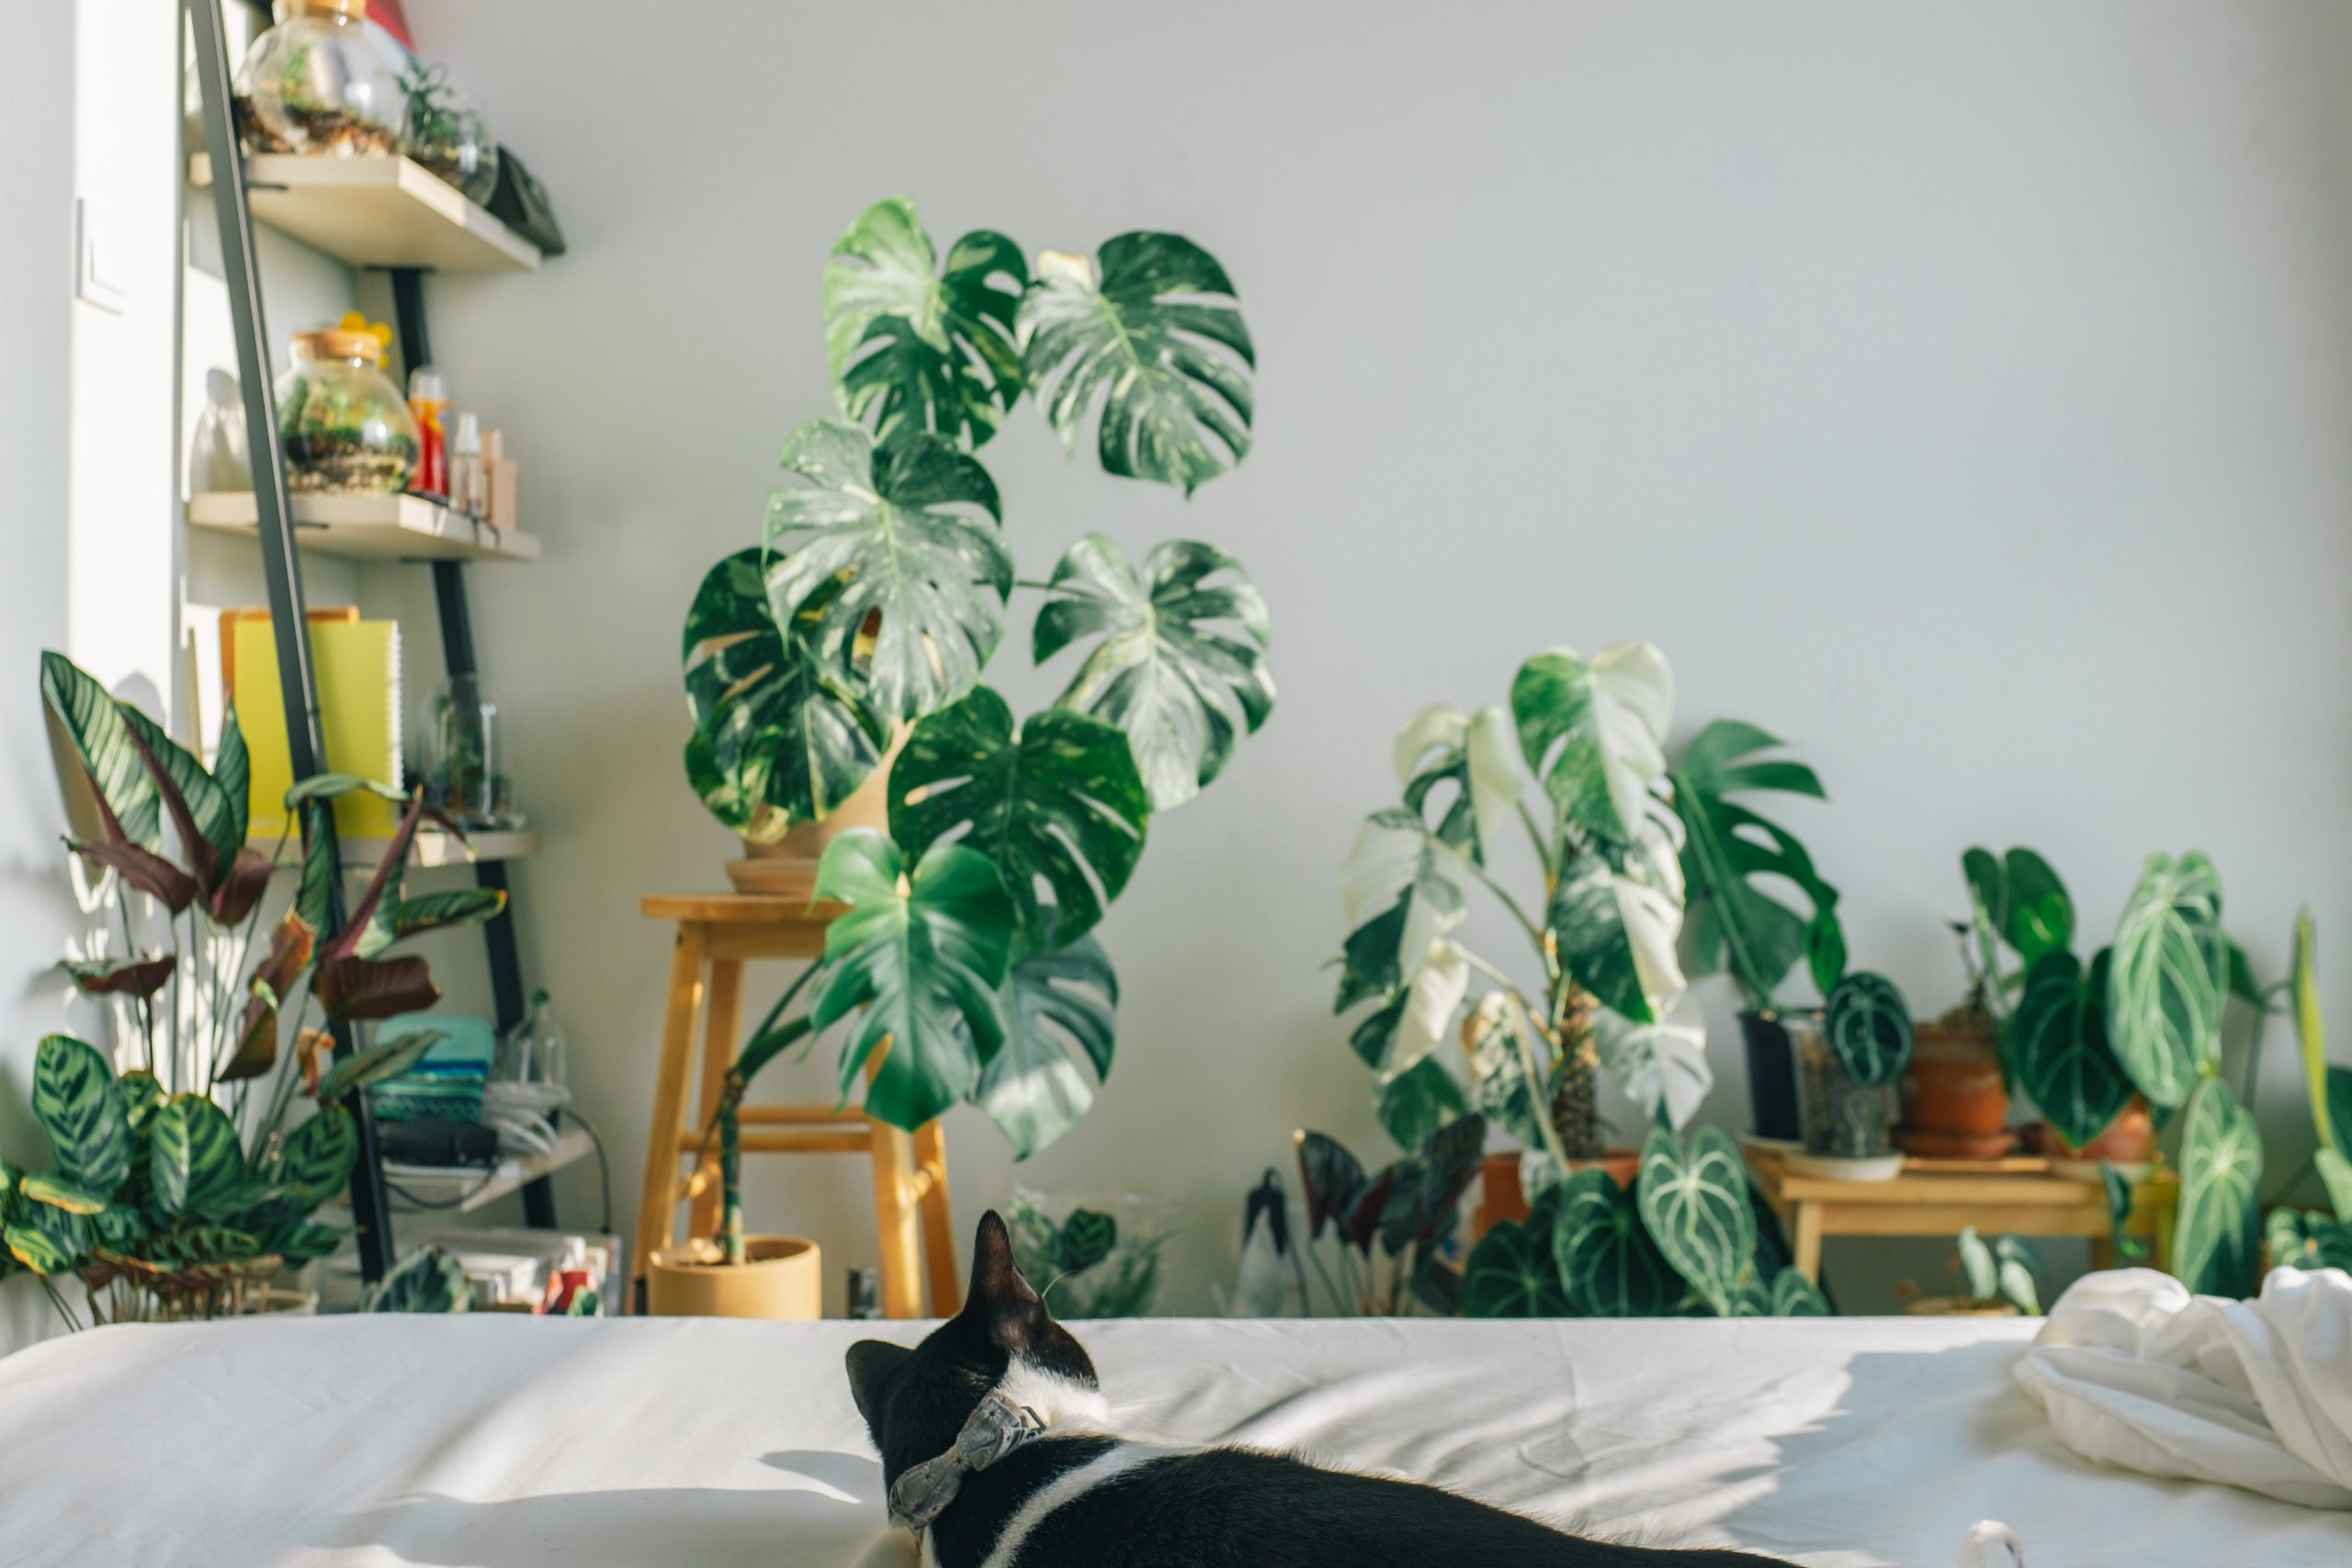 indoor plant to fit the nature-inspired room decor ideas